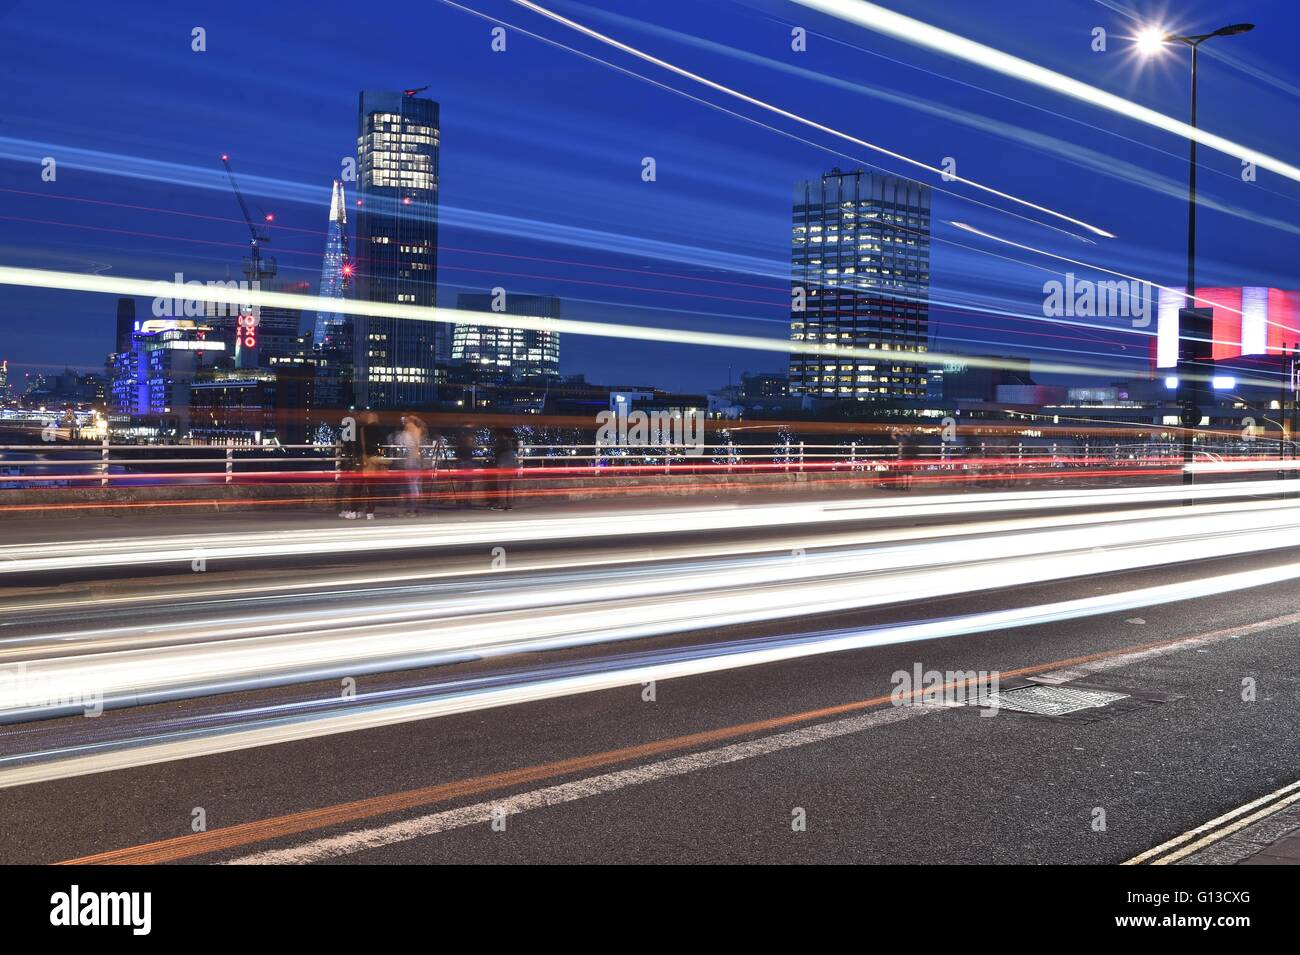 Light trail shot over looking embankment - Stock Image